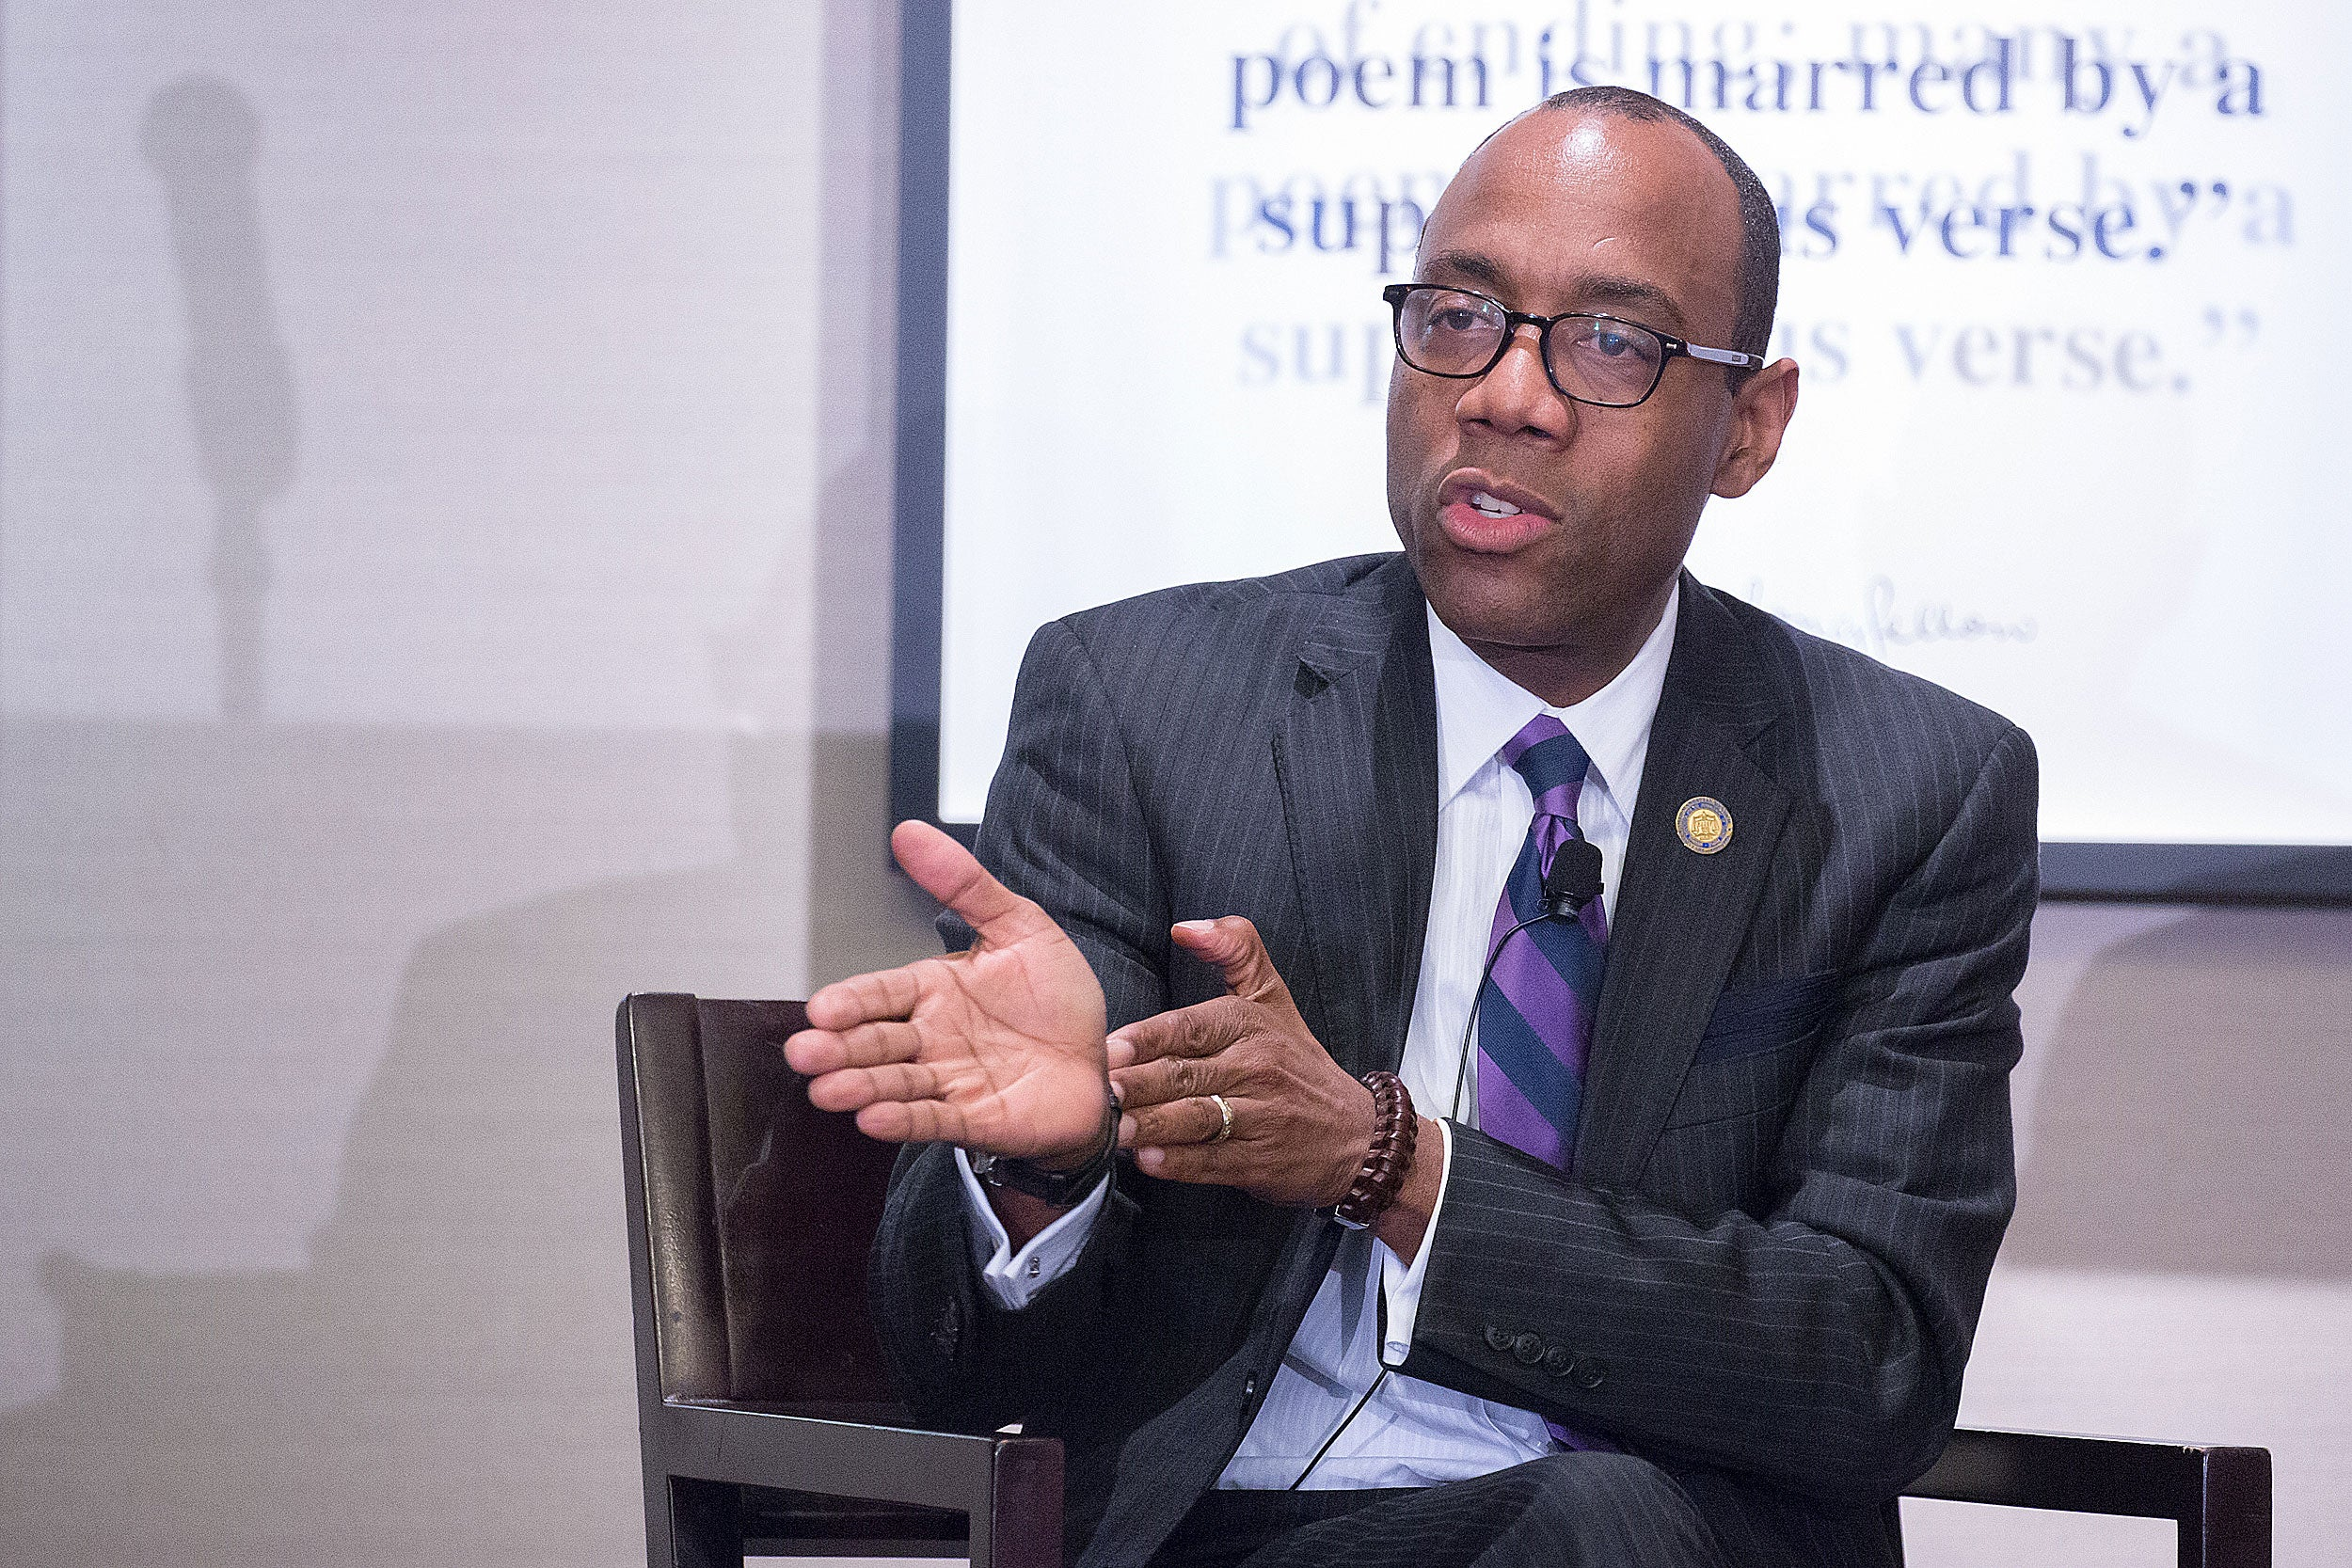 """""""There is no more important a task than ... advancing the practice of social justice,"""" said Cornell William Brooks. """"That is precisely why I am excited to be joining my Kennedy School colleagues and leading this effort."""""""